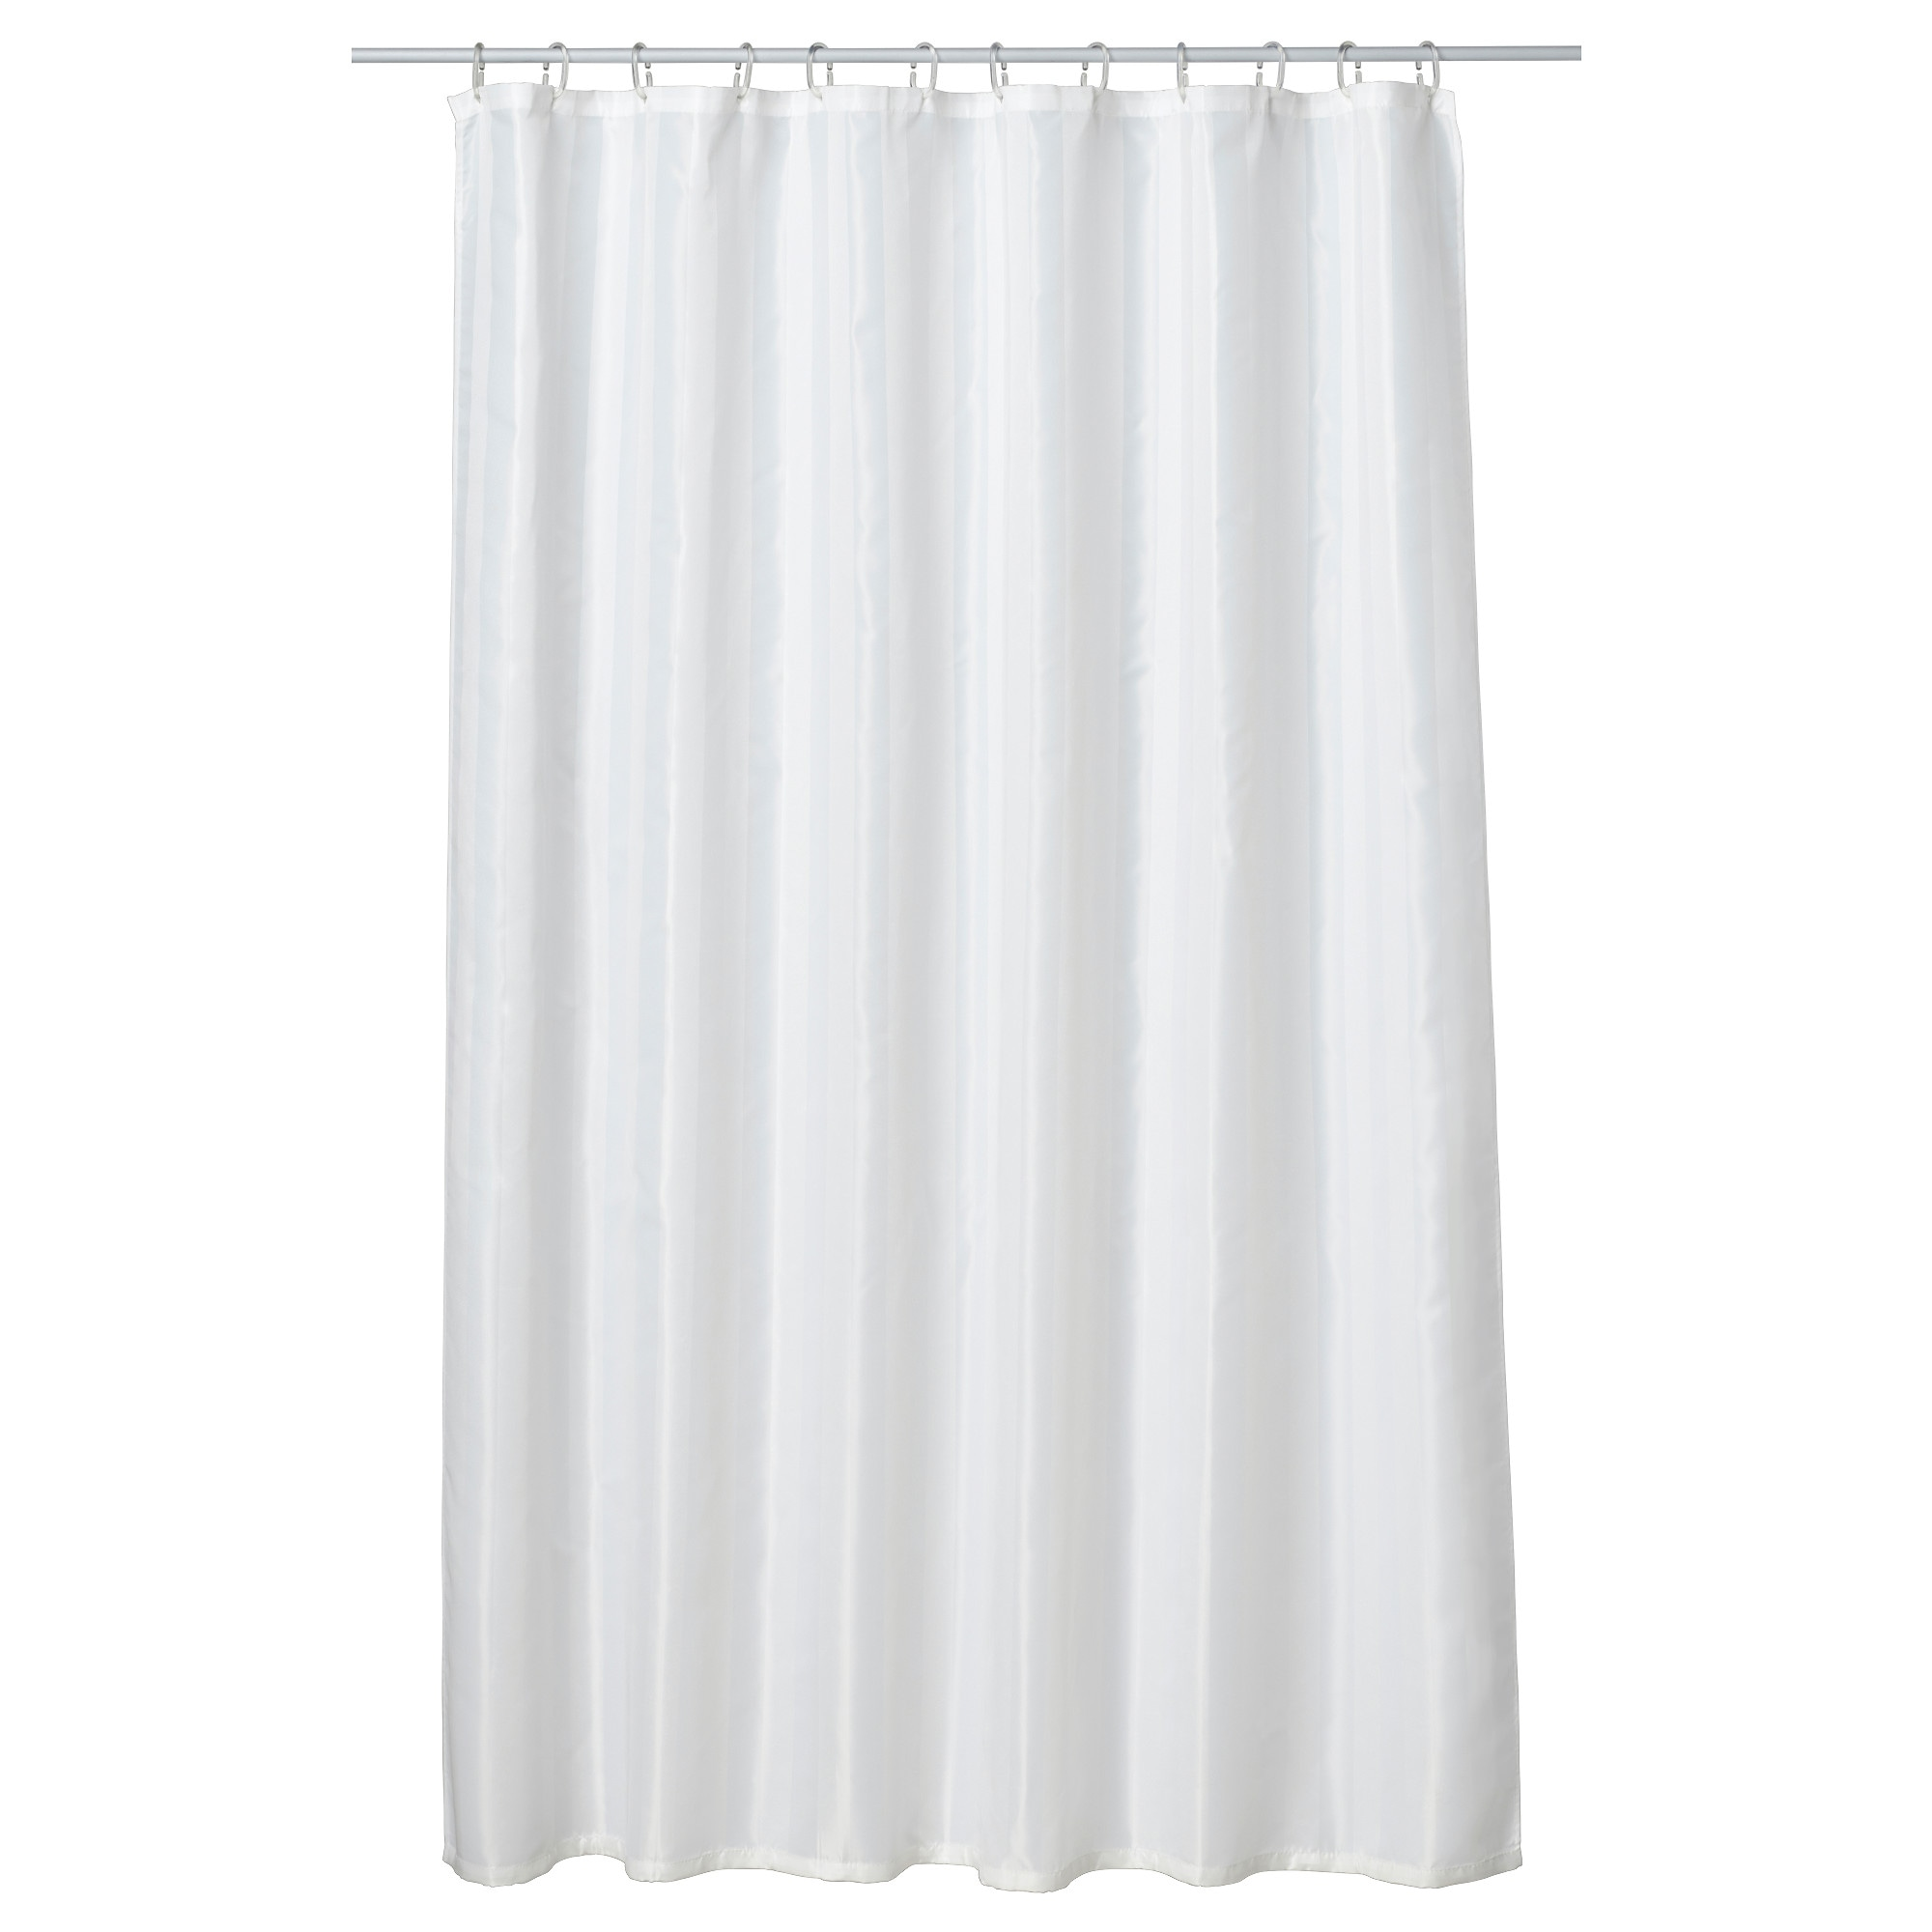 Black toile shower curtain - Saltgrund Shower Curtain White Length 71 Width 71 Area 34 88